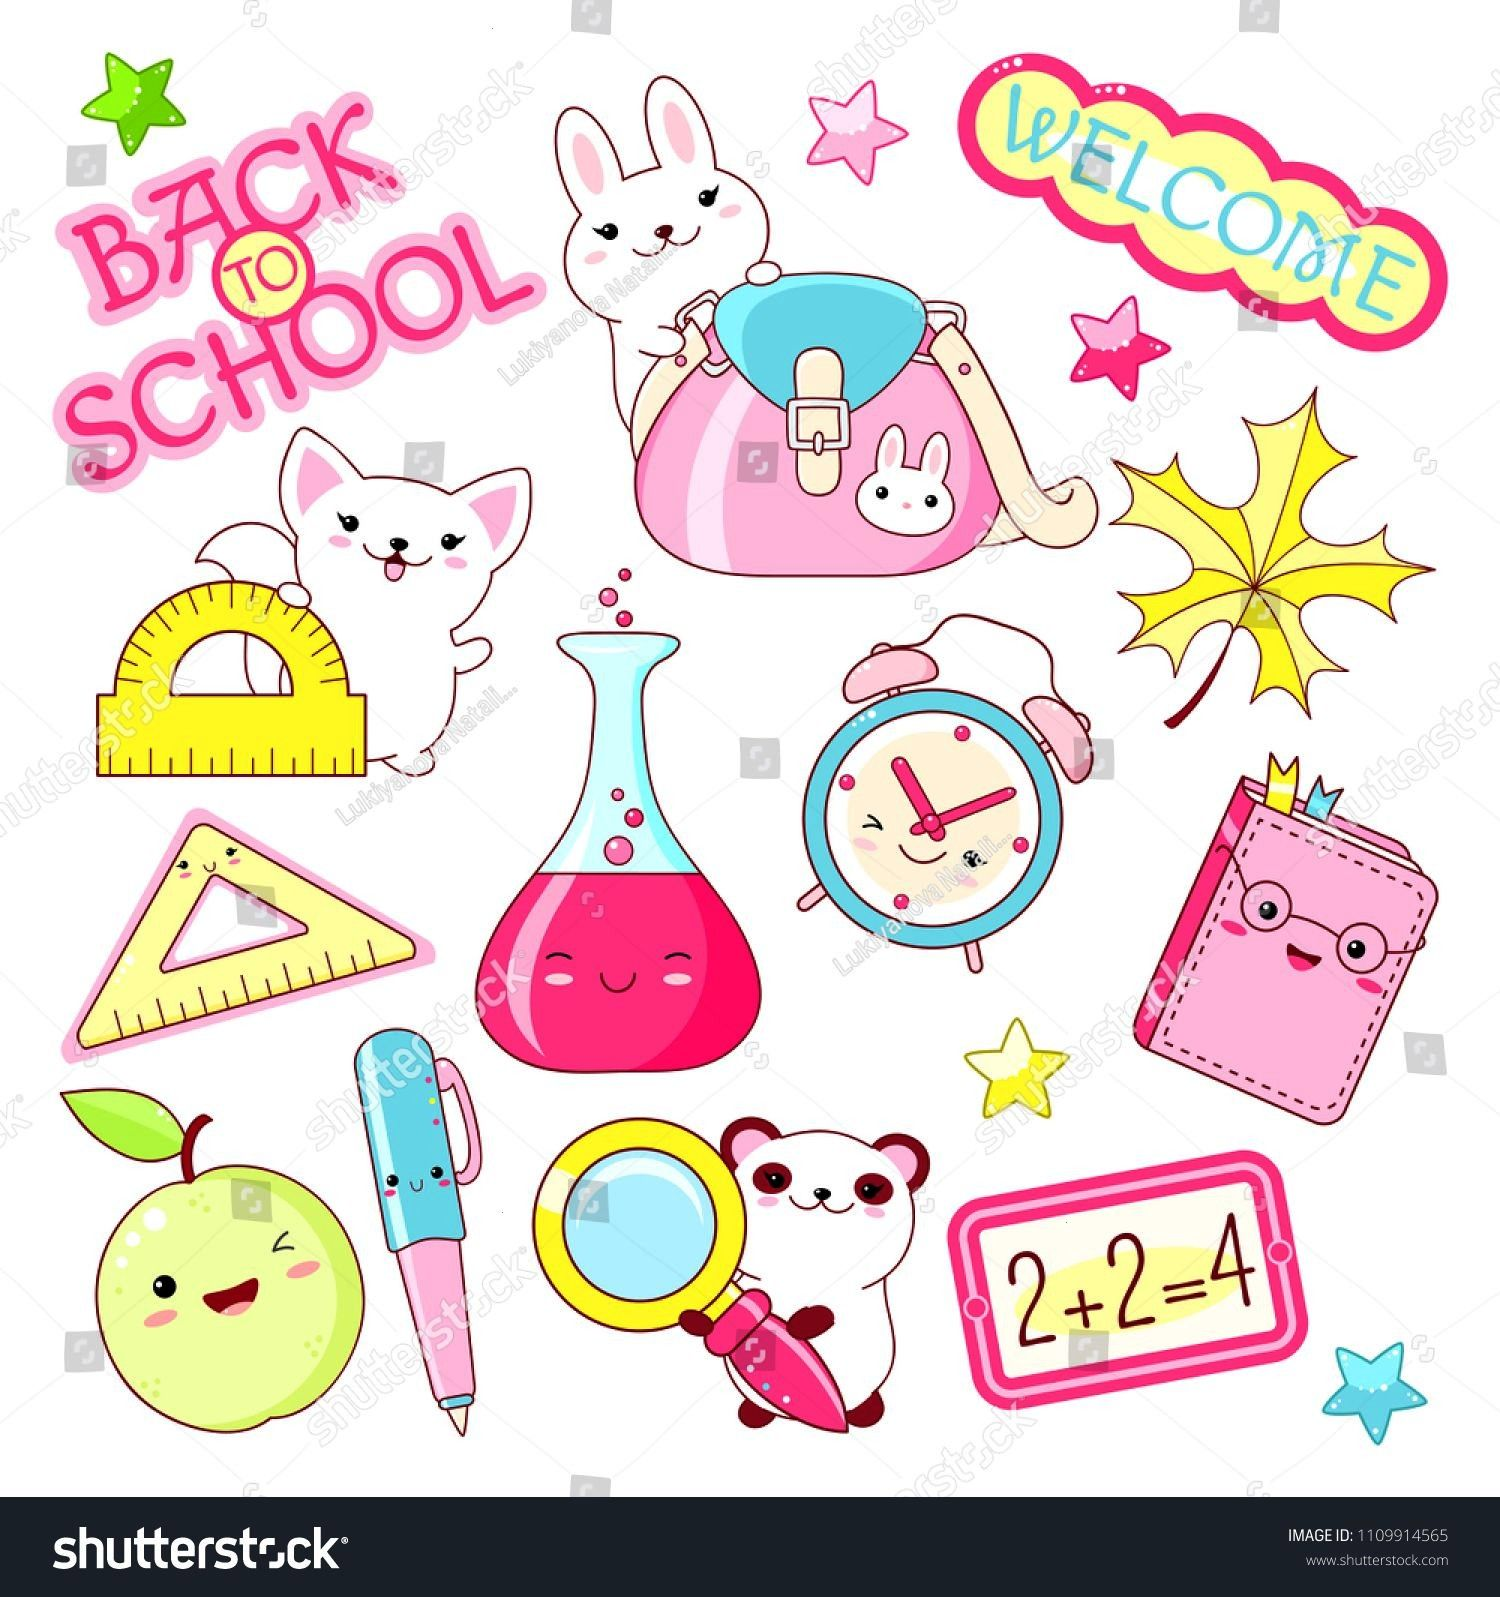 to school. Vector set of education icons in kawaii style. Bunny with bag, cat with ruler, alarm clo